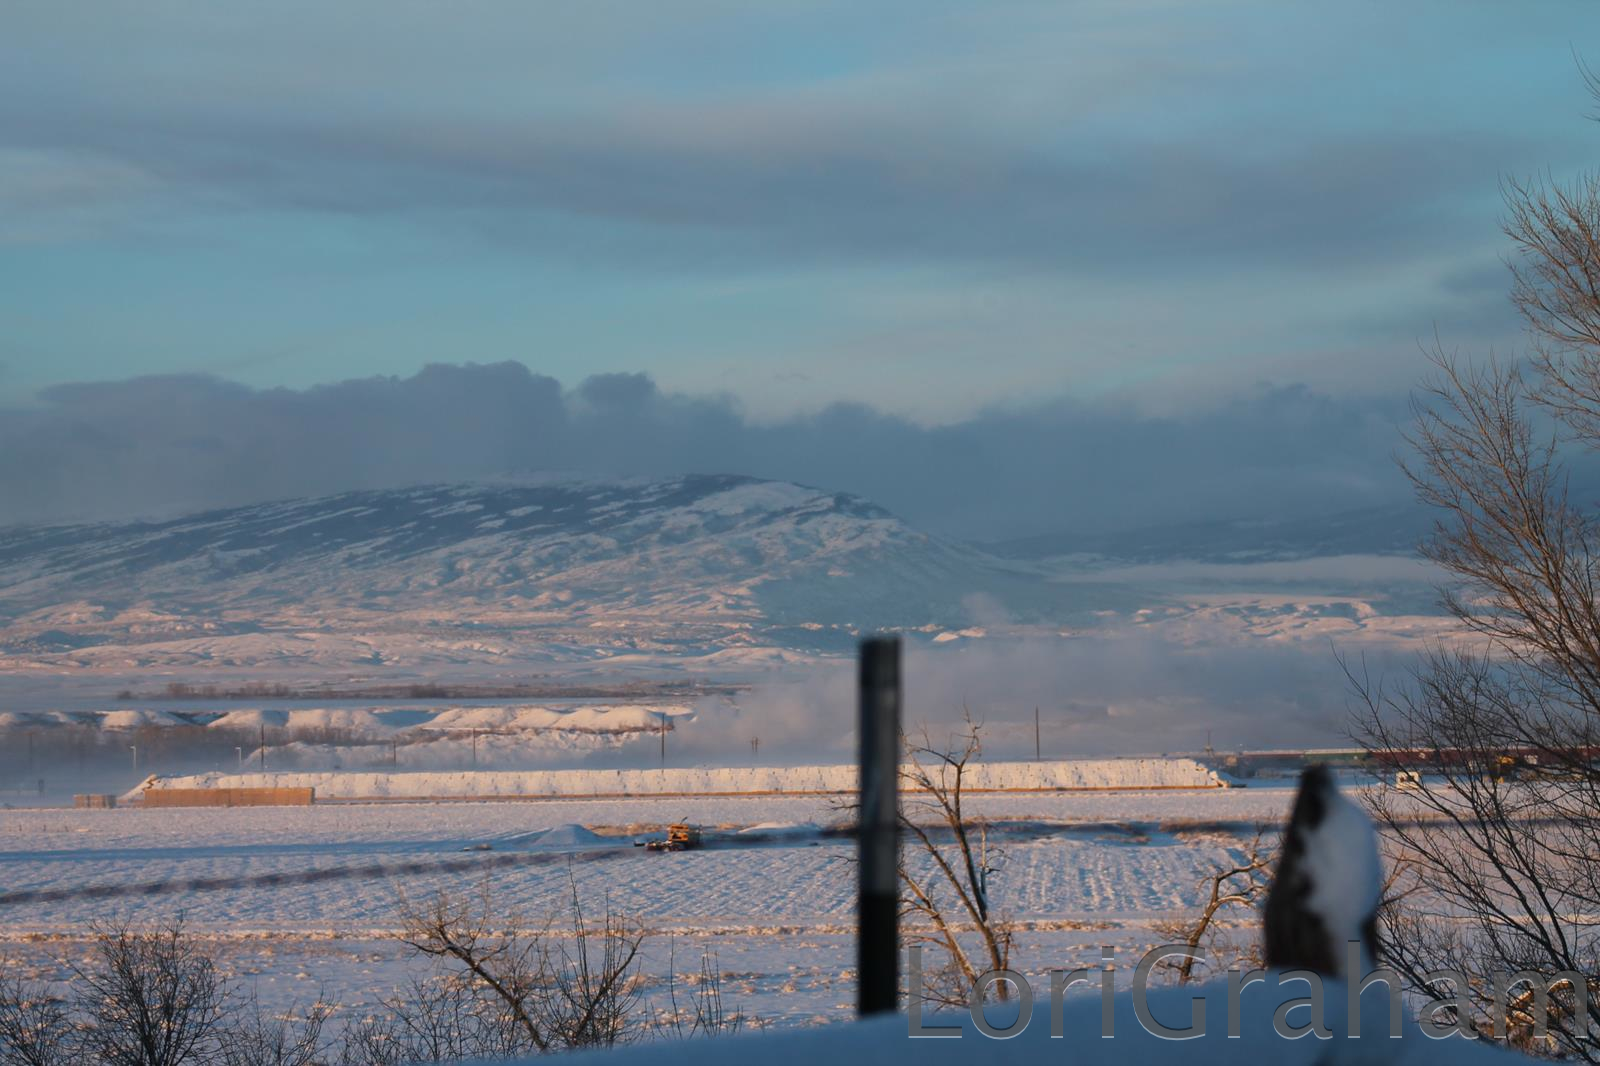 A look at the snowy Pryors, December 10, 2012